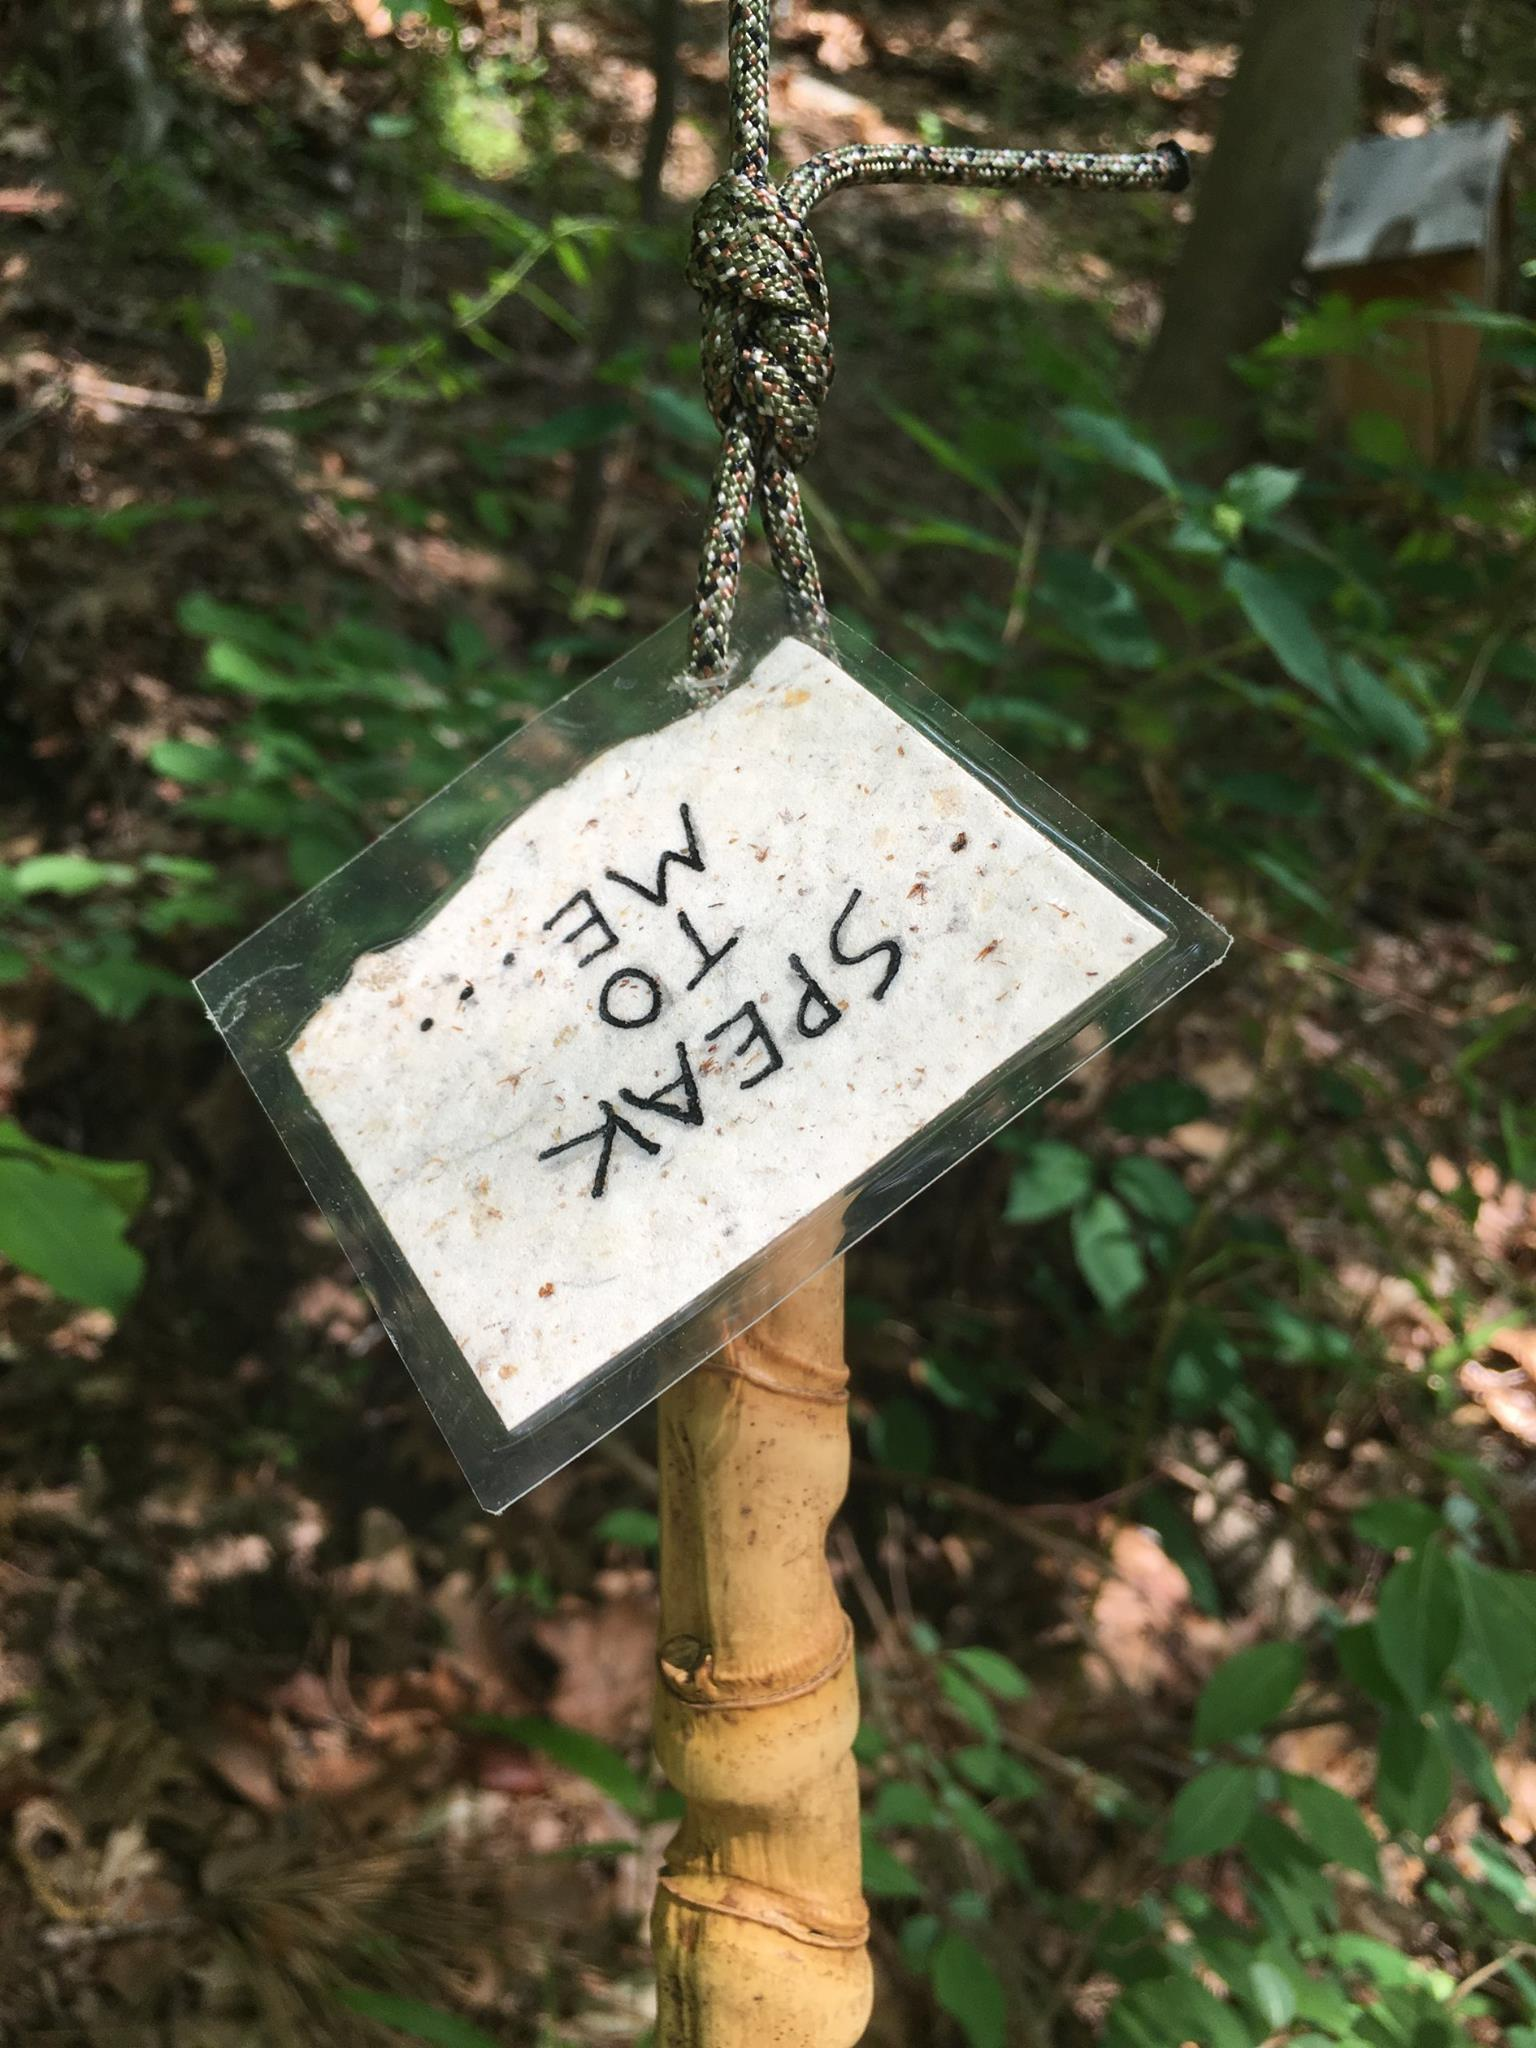 """Attached to the clapper is a label that reads """"Speak to me..."""" on one side and """"gently"""" on the other.Visitors at Blue Heron Nature Preserve in Atlanta, GA are invited to interact with the   Mother Tongue  , using the bamboo clapper to activate the chime."""